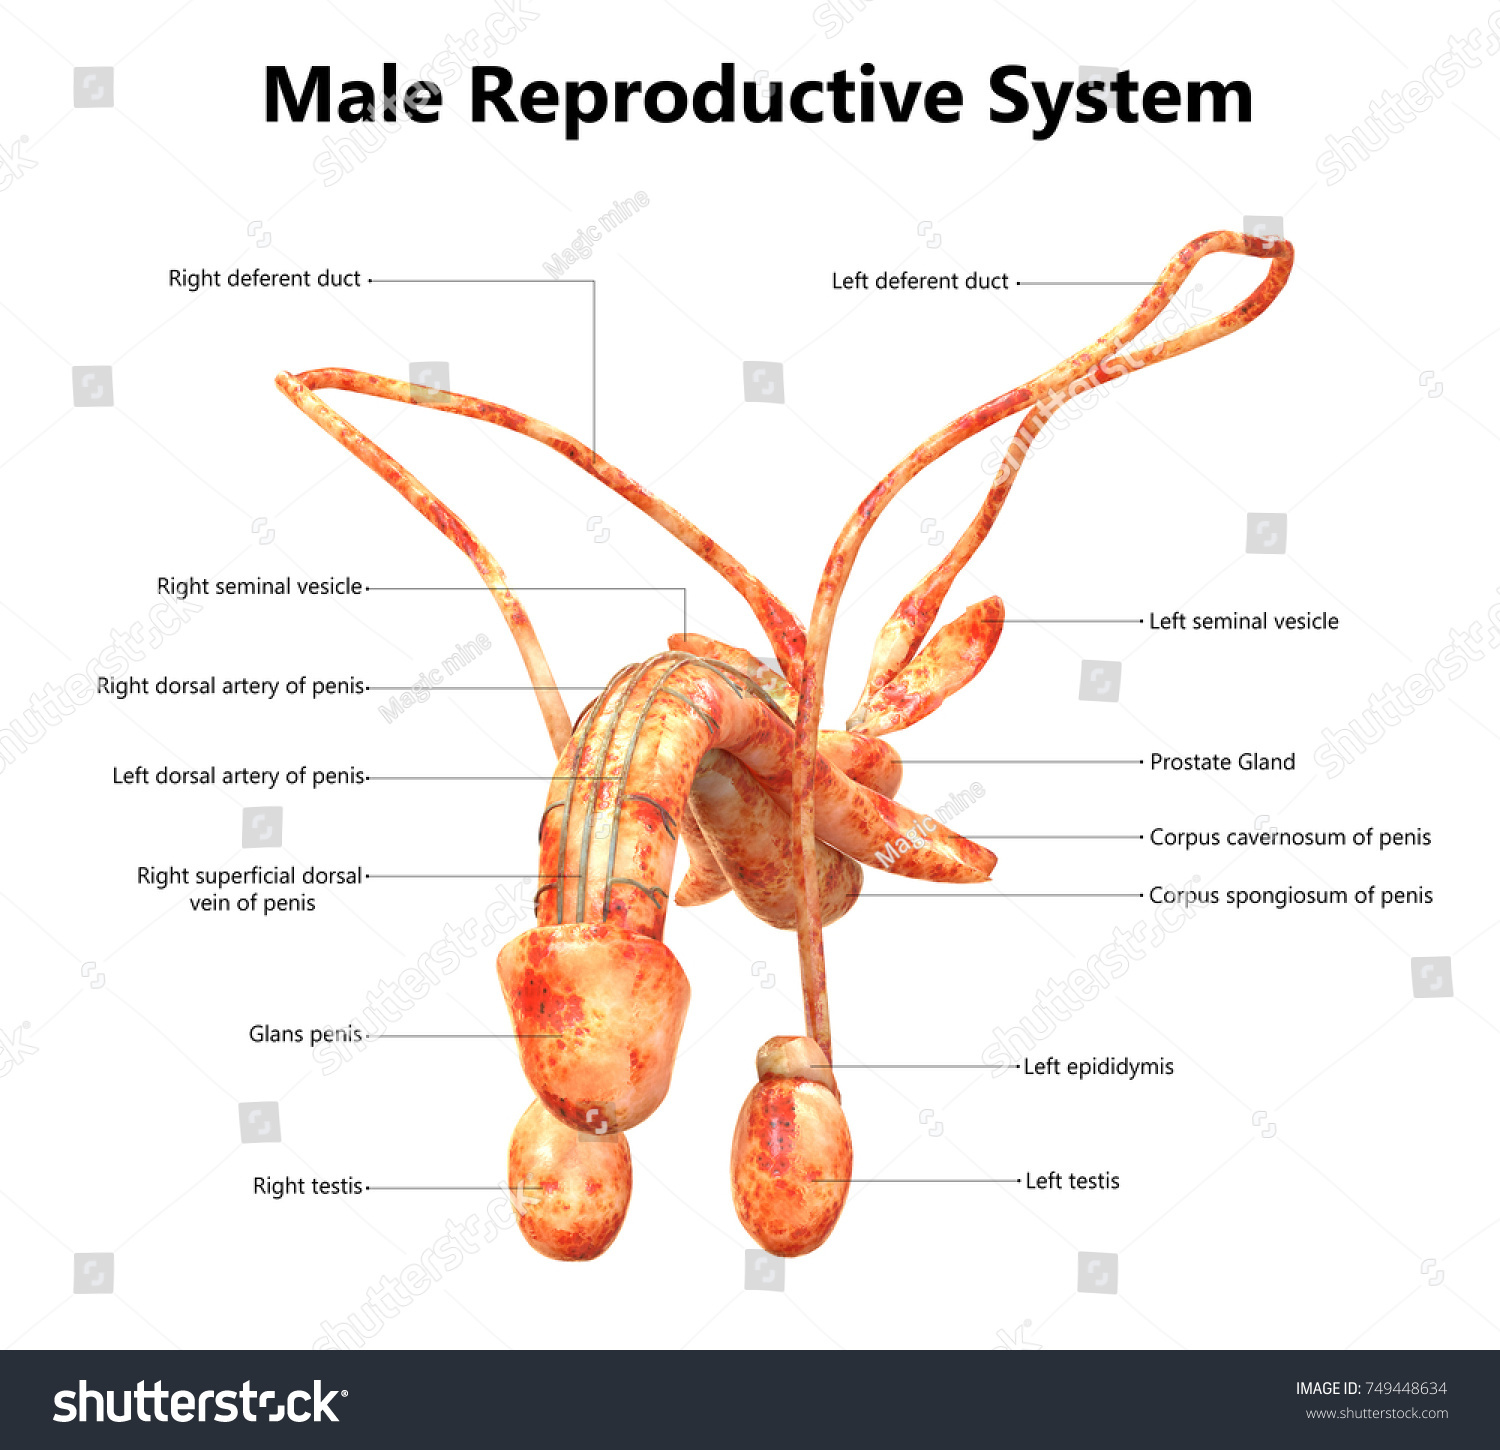 Male Reproductive System Anatomy Detailed Labels Stock Illustration ...